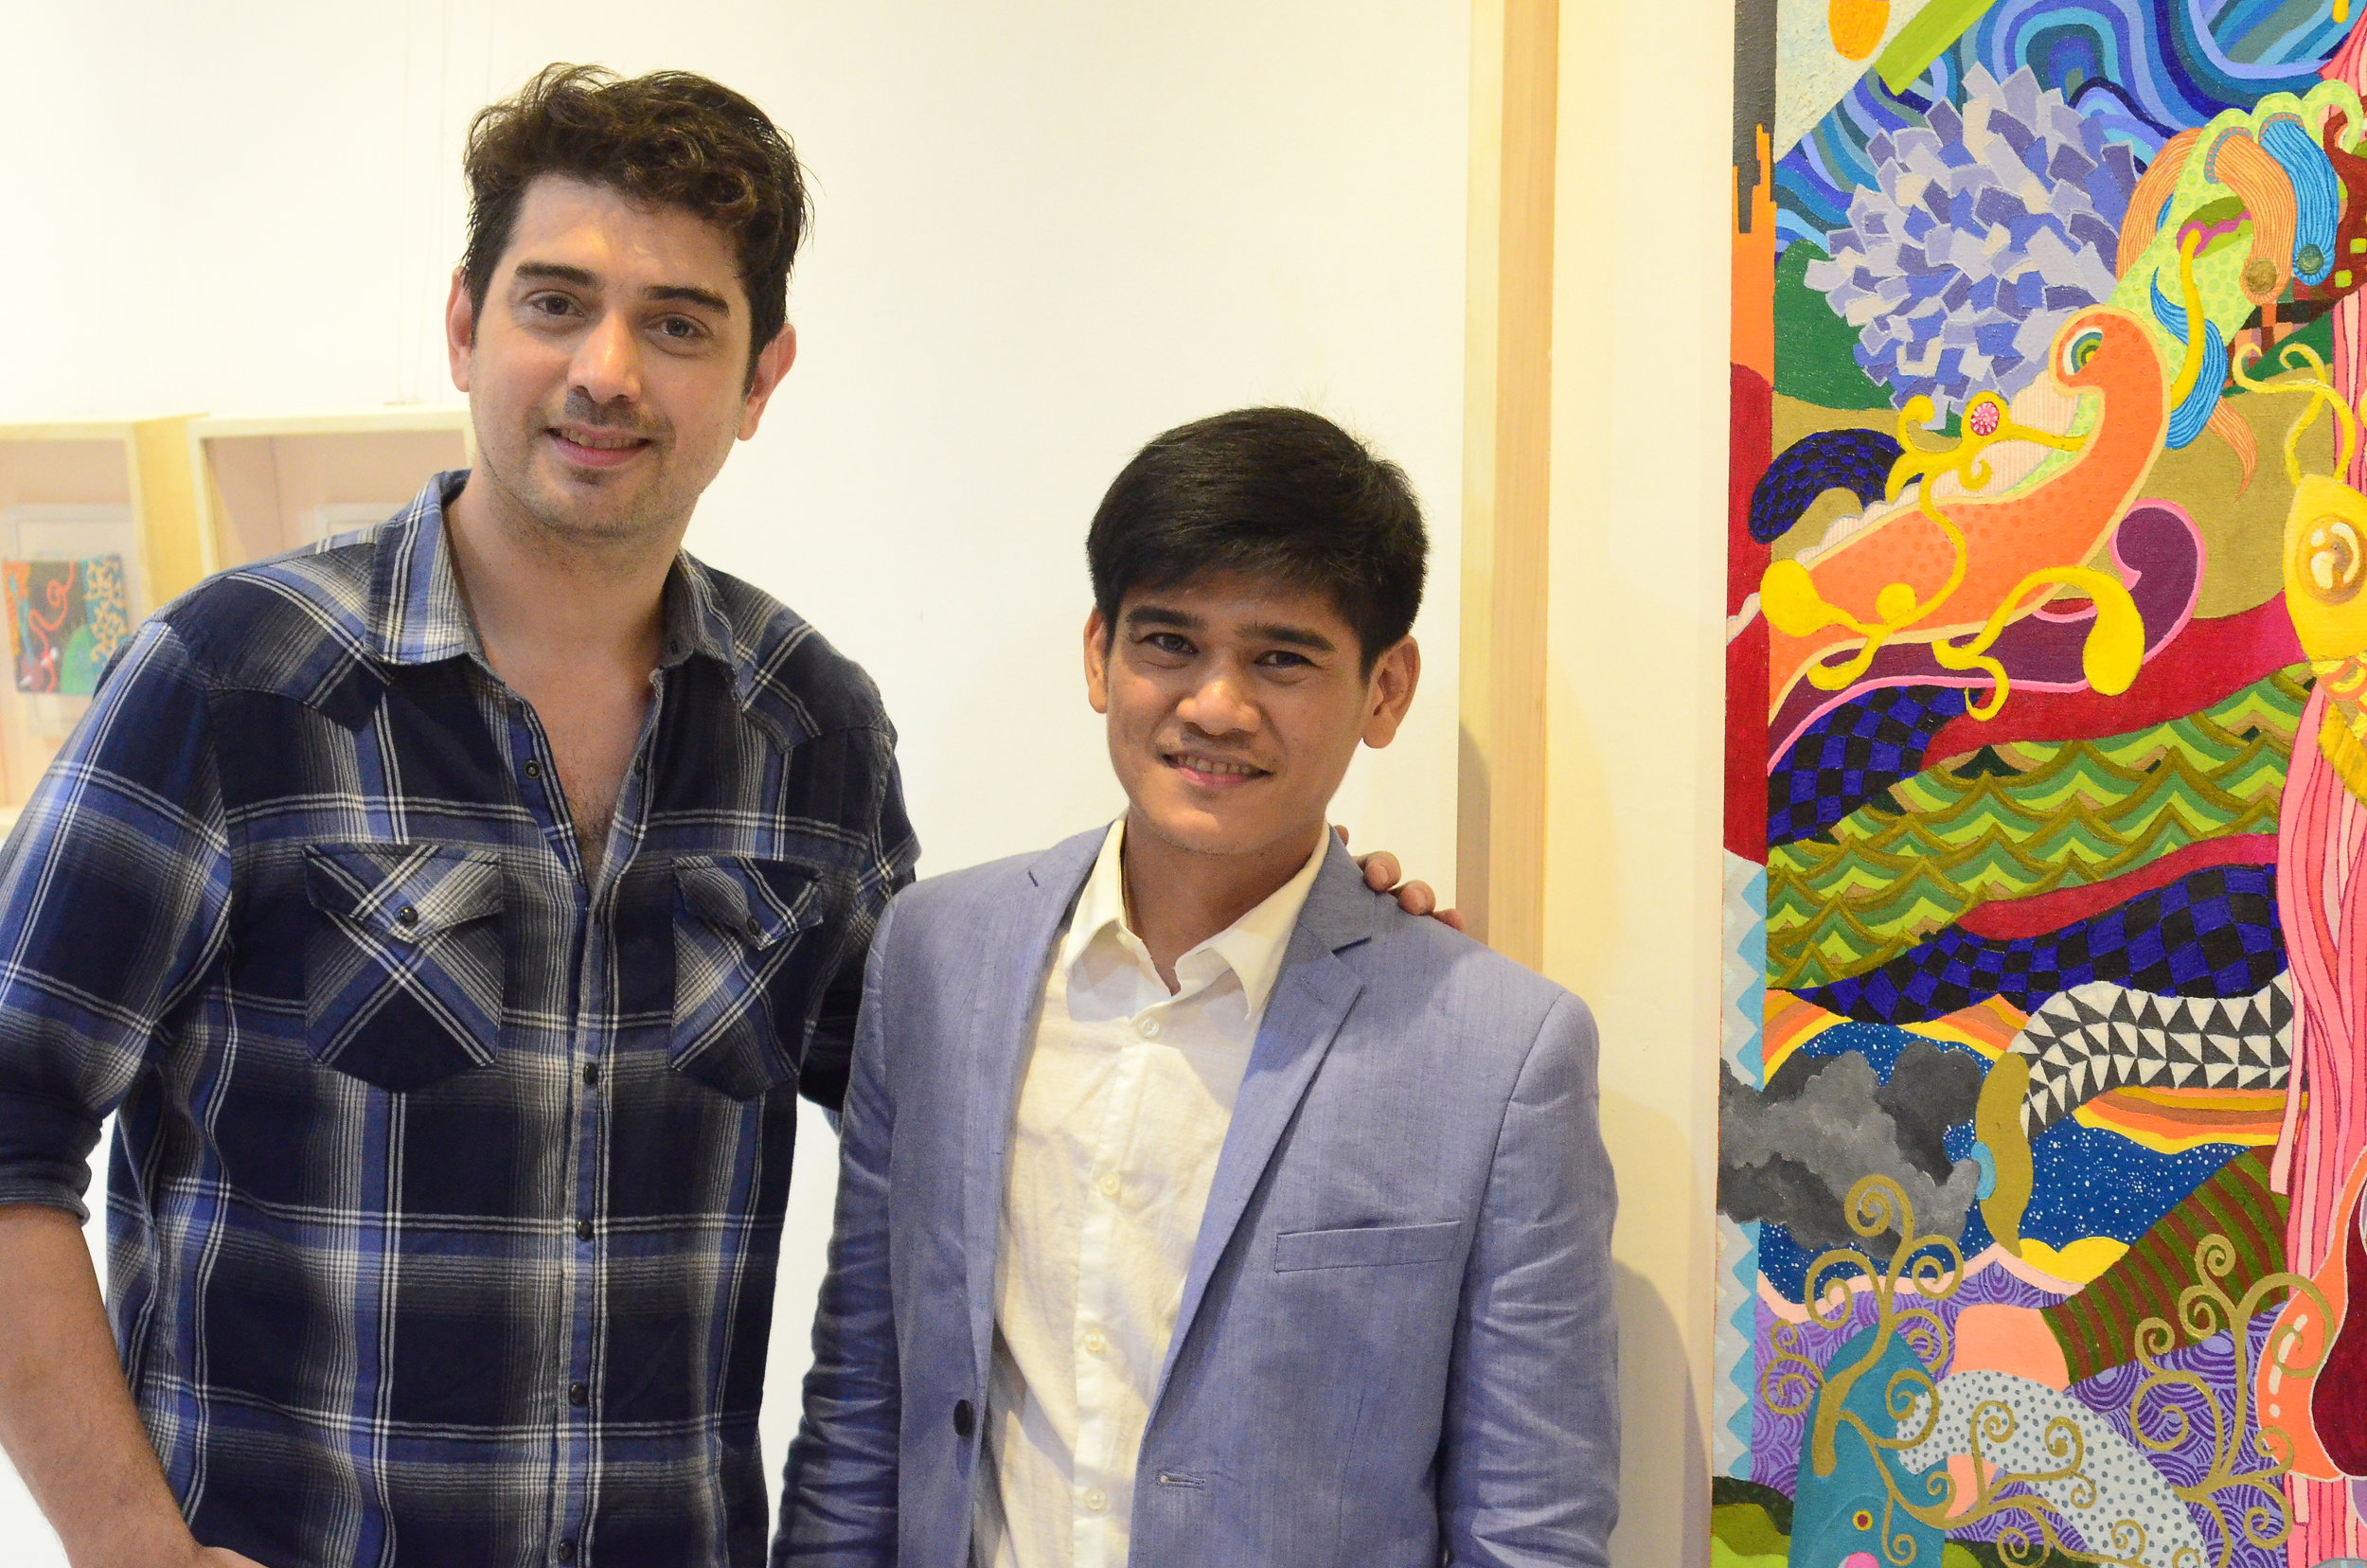 With Guest of Honor - Actor and Visual Artist Ian Veneracion